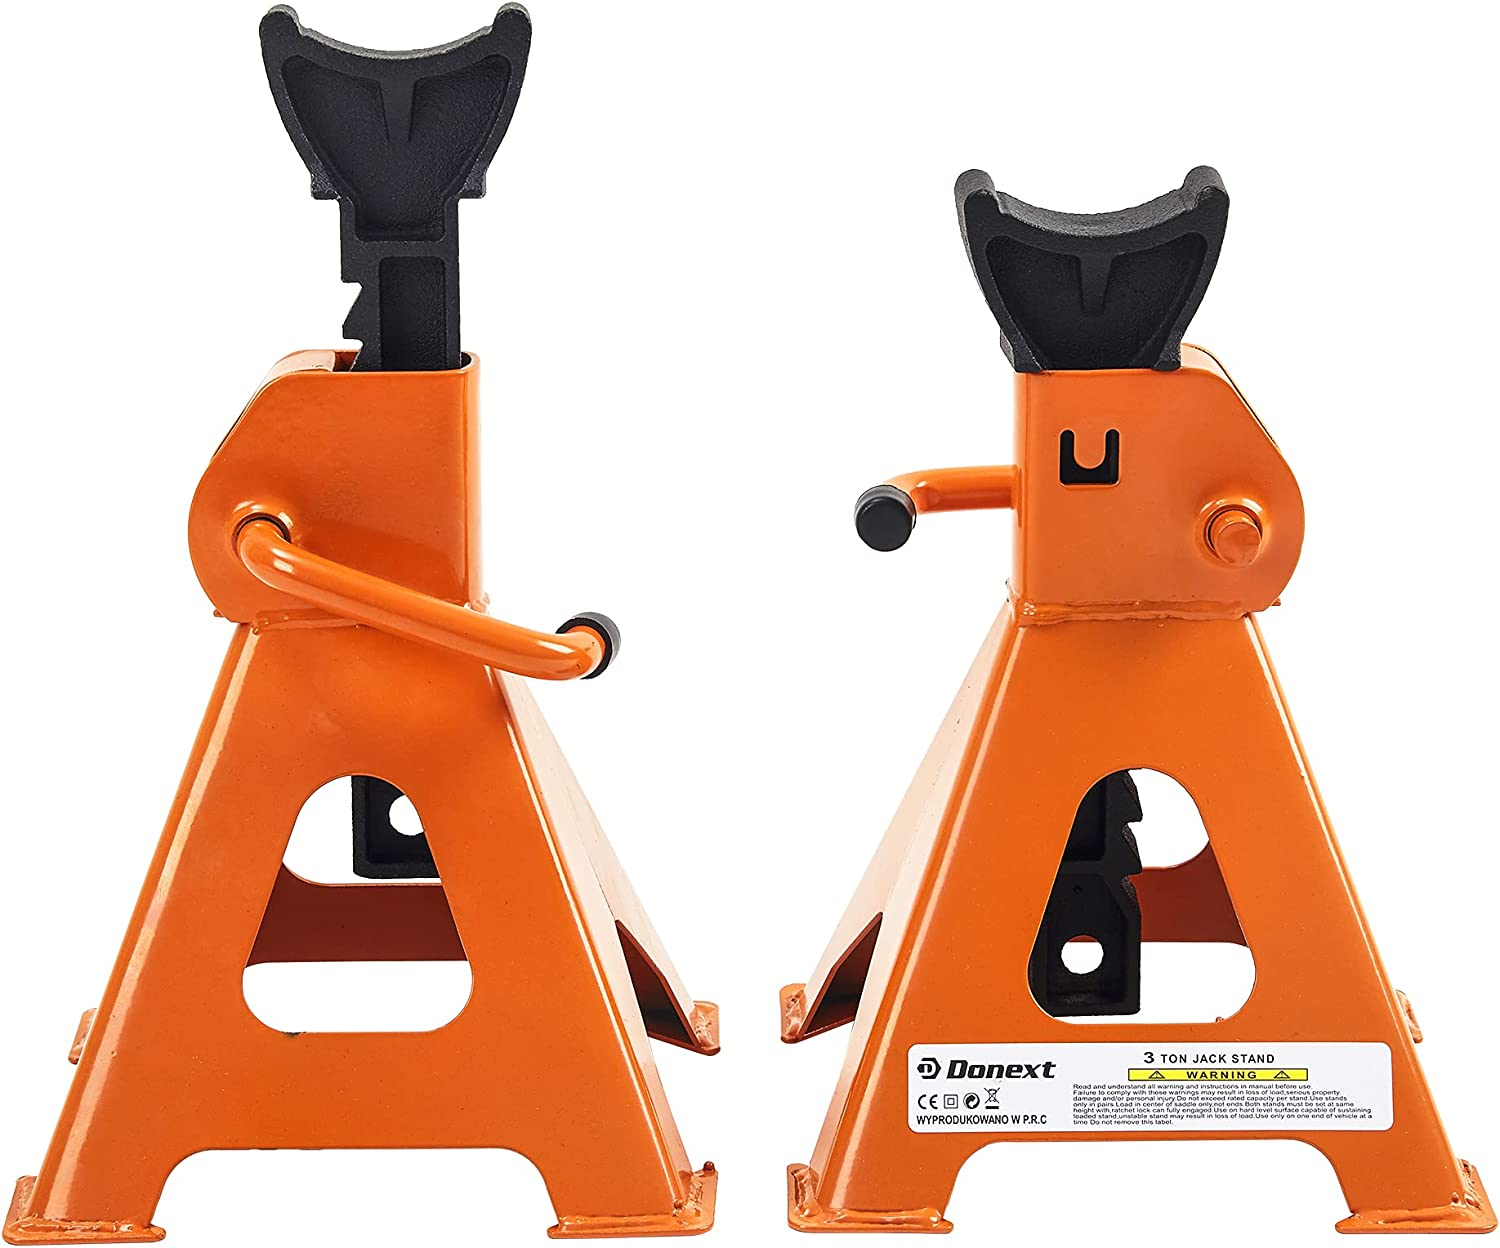 Donext Max 88% OFF Jack Stand 3 Ton Clearance SALE! Limited time! 1 Steel Orange Capacity Pair